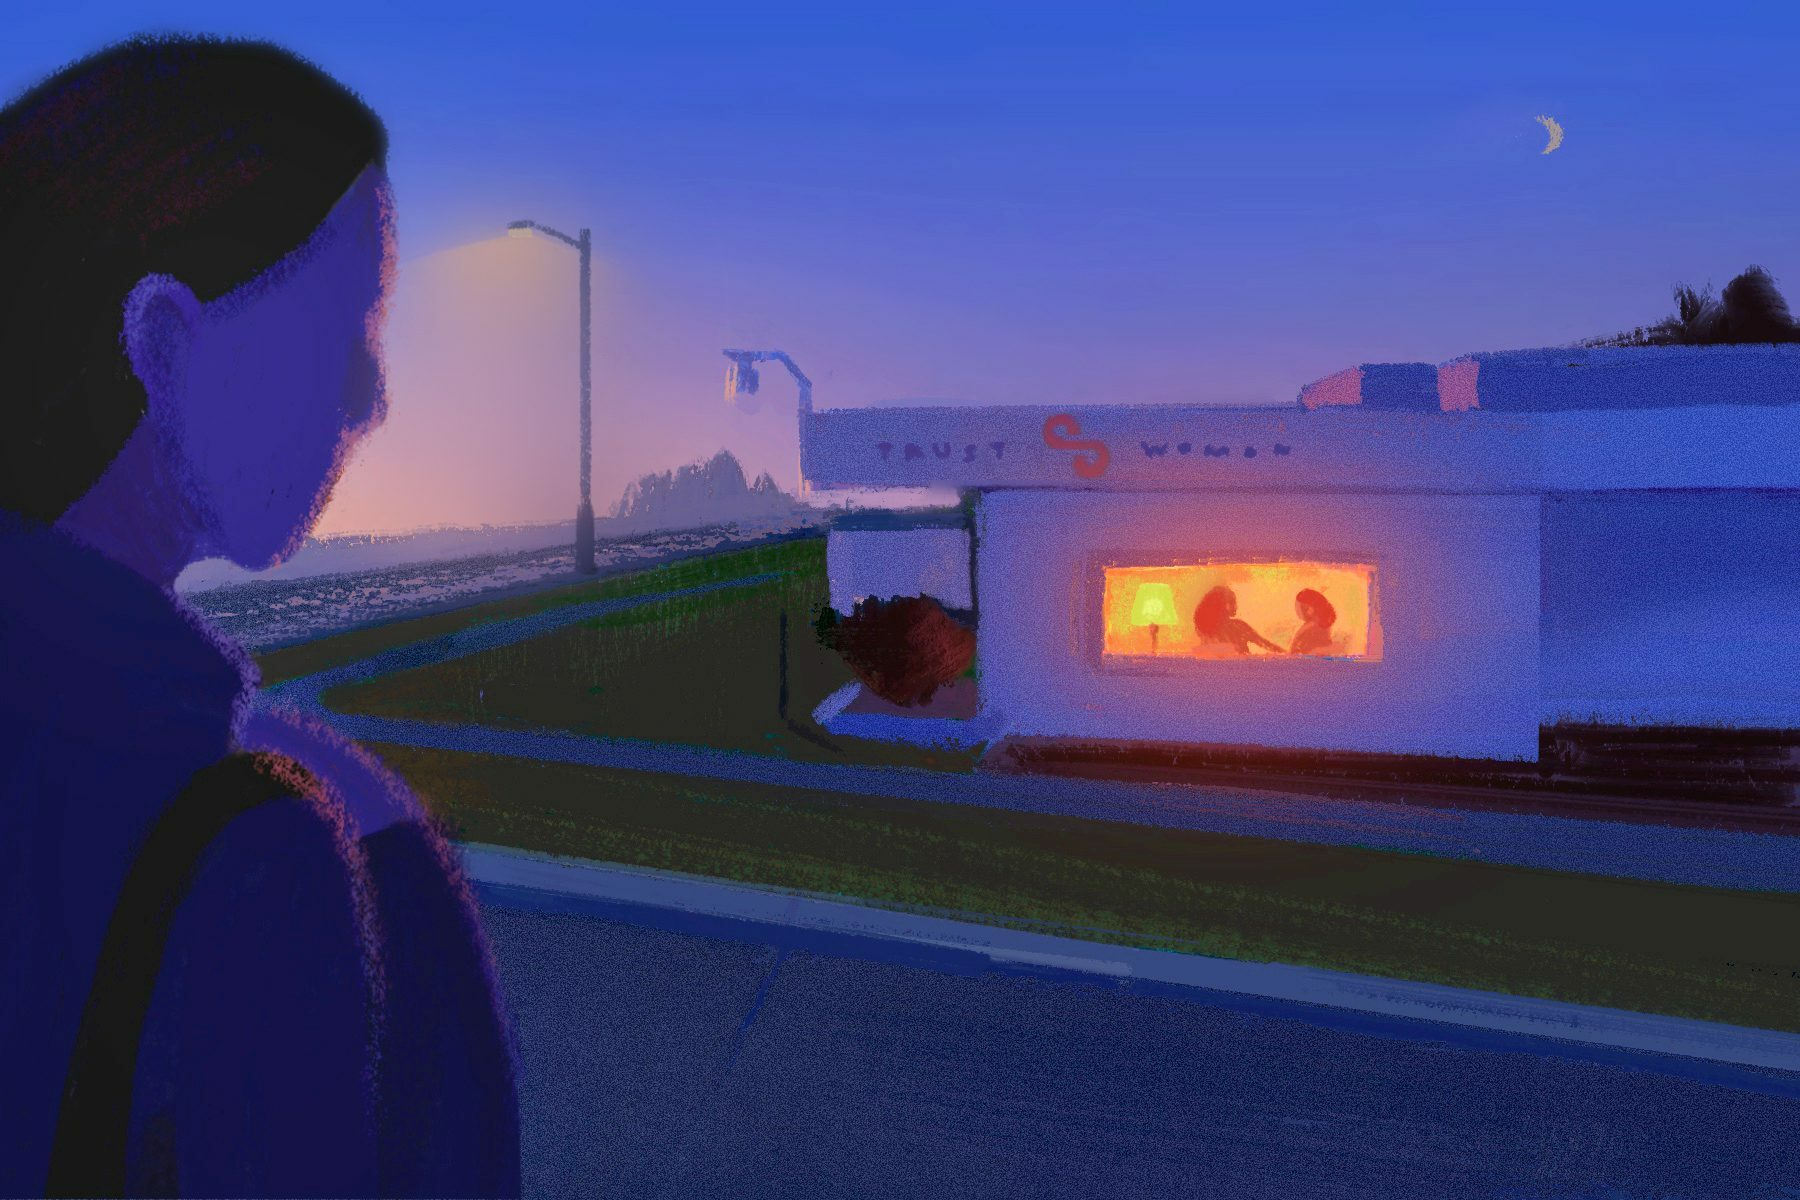 In this illustration, a figure approaches the Trust Women clinic in Wichita, Kansas at dusk. A warm glow comes from the clinic's window where two more figures are seen.